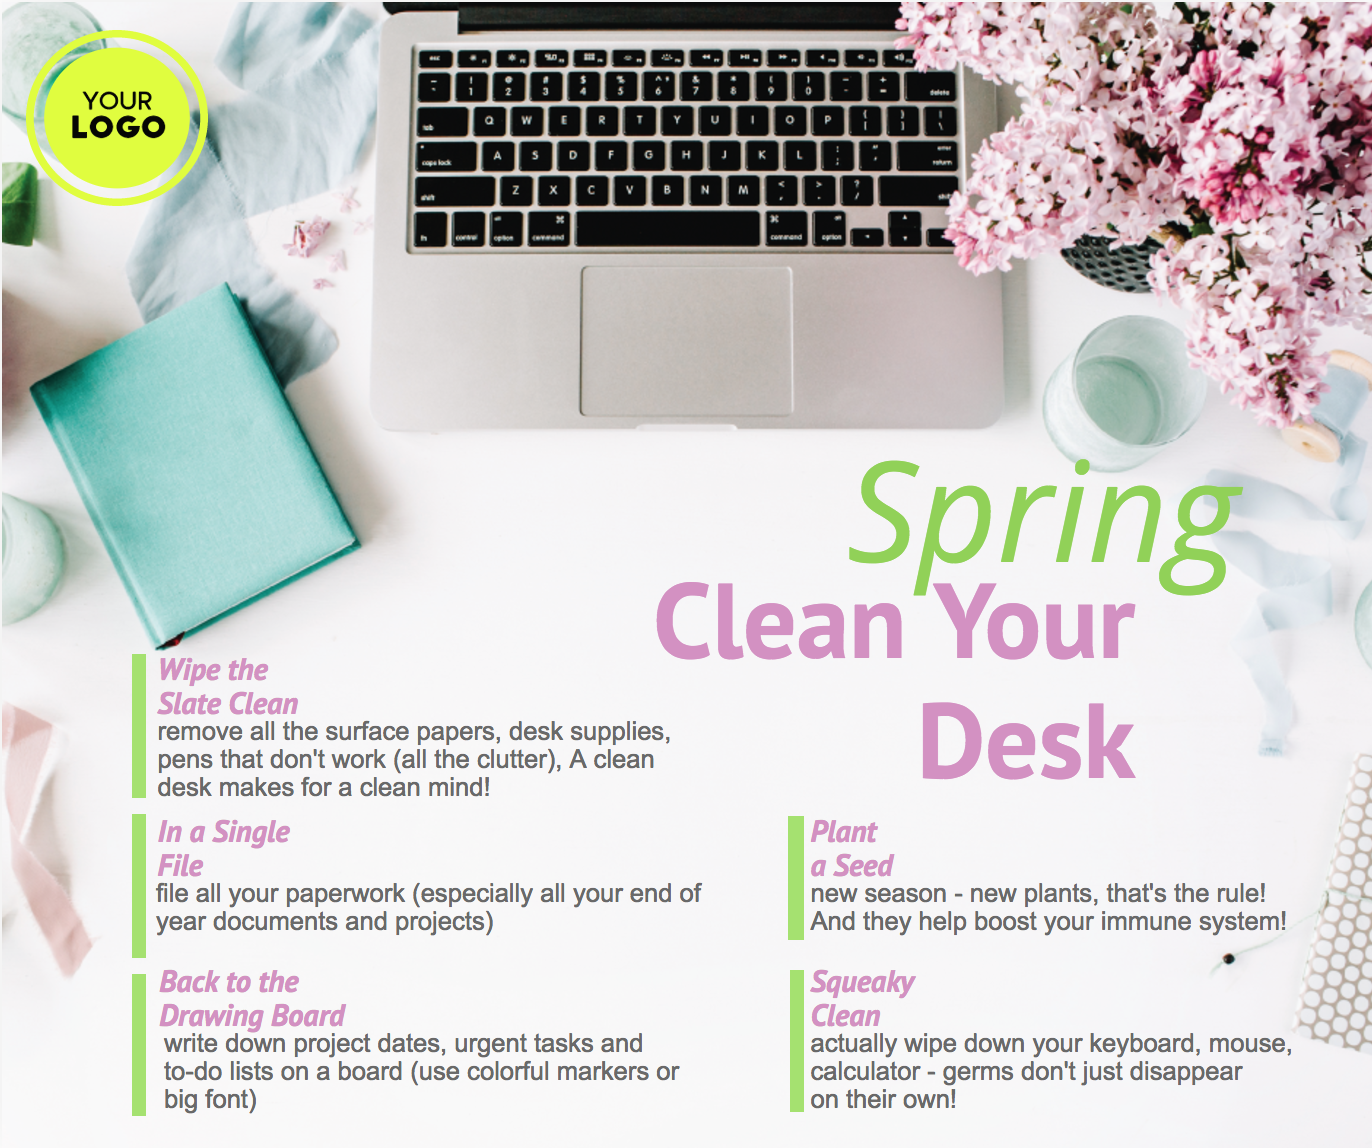 spring clean your desk img